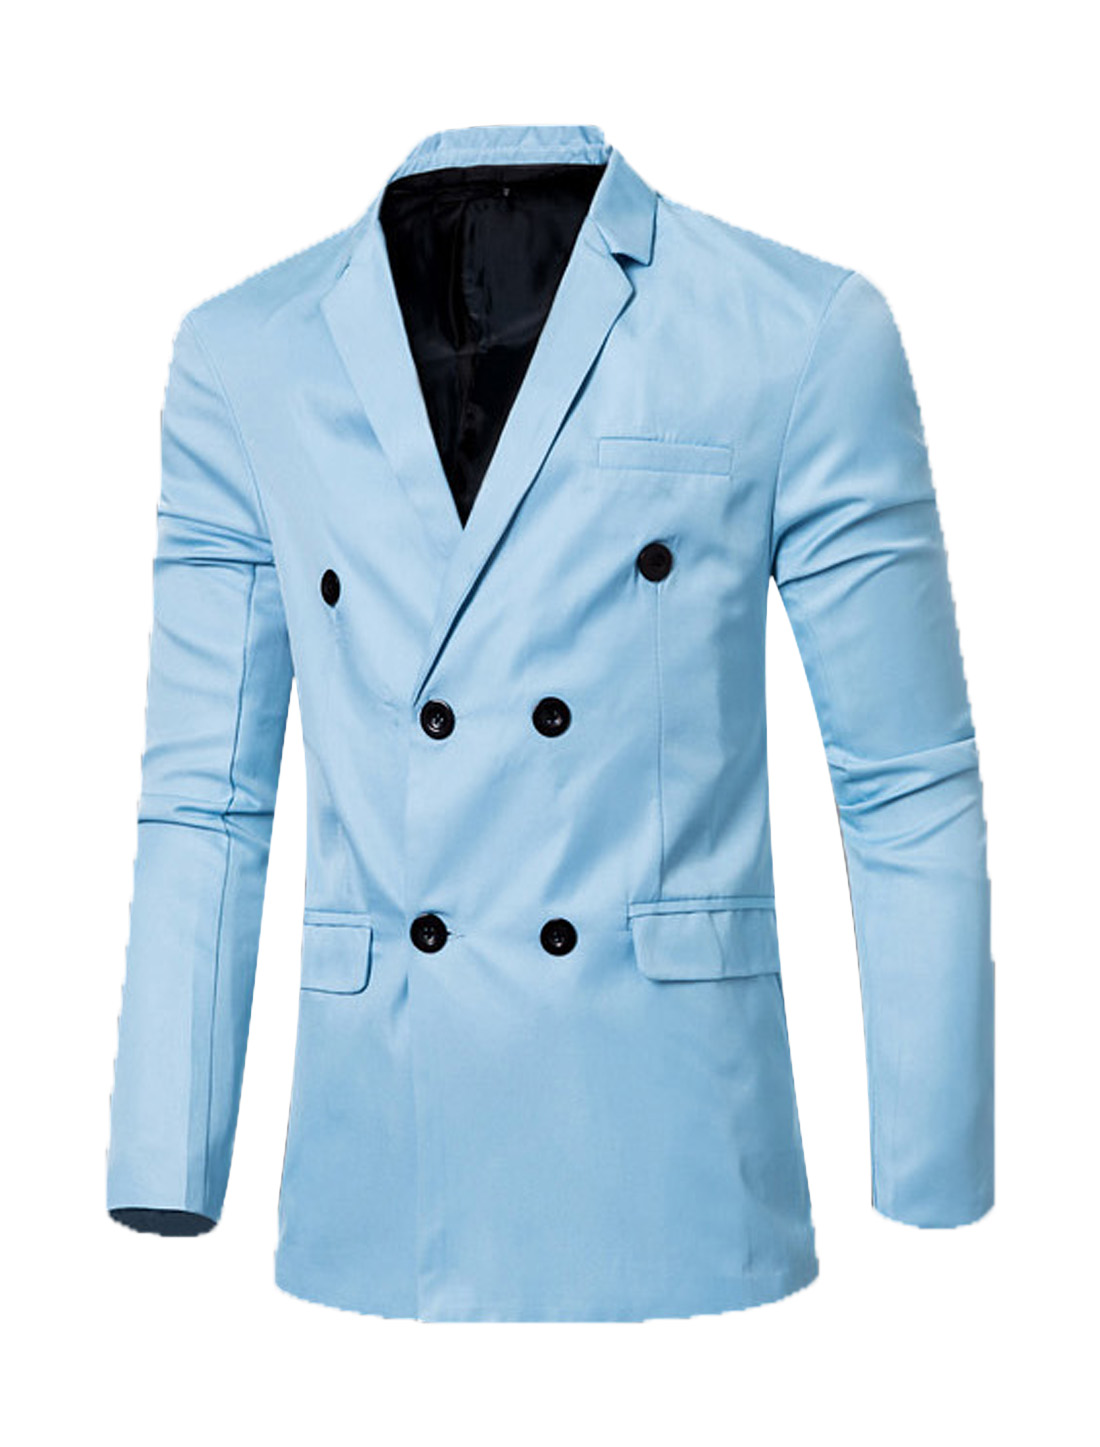 Men Notched Lapel Flap Pockets Double Breasted Blazer Sky Blue M